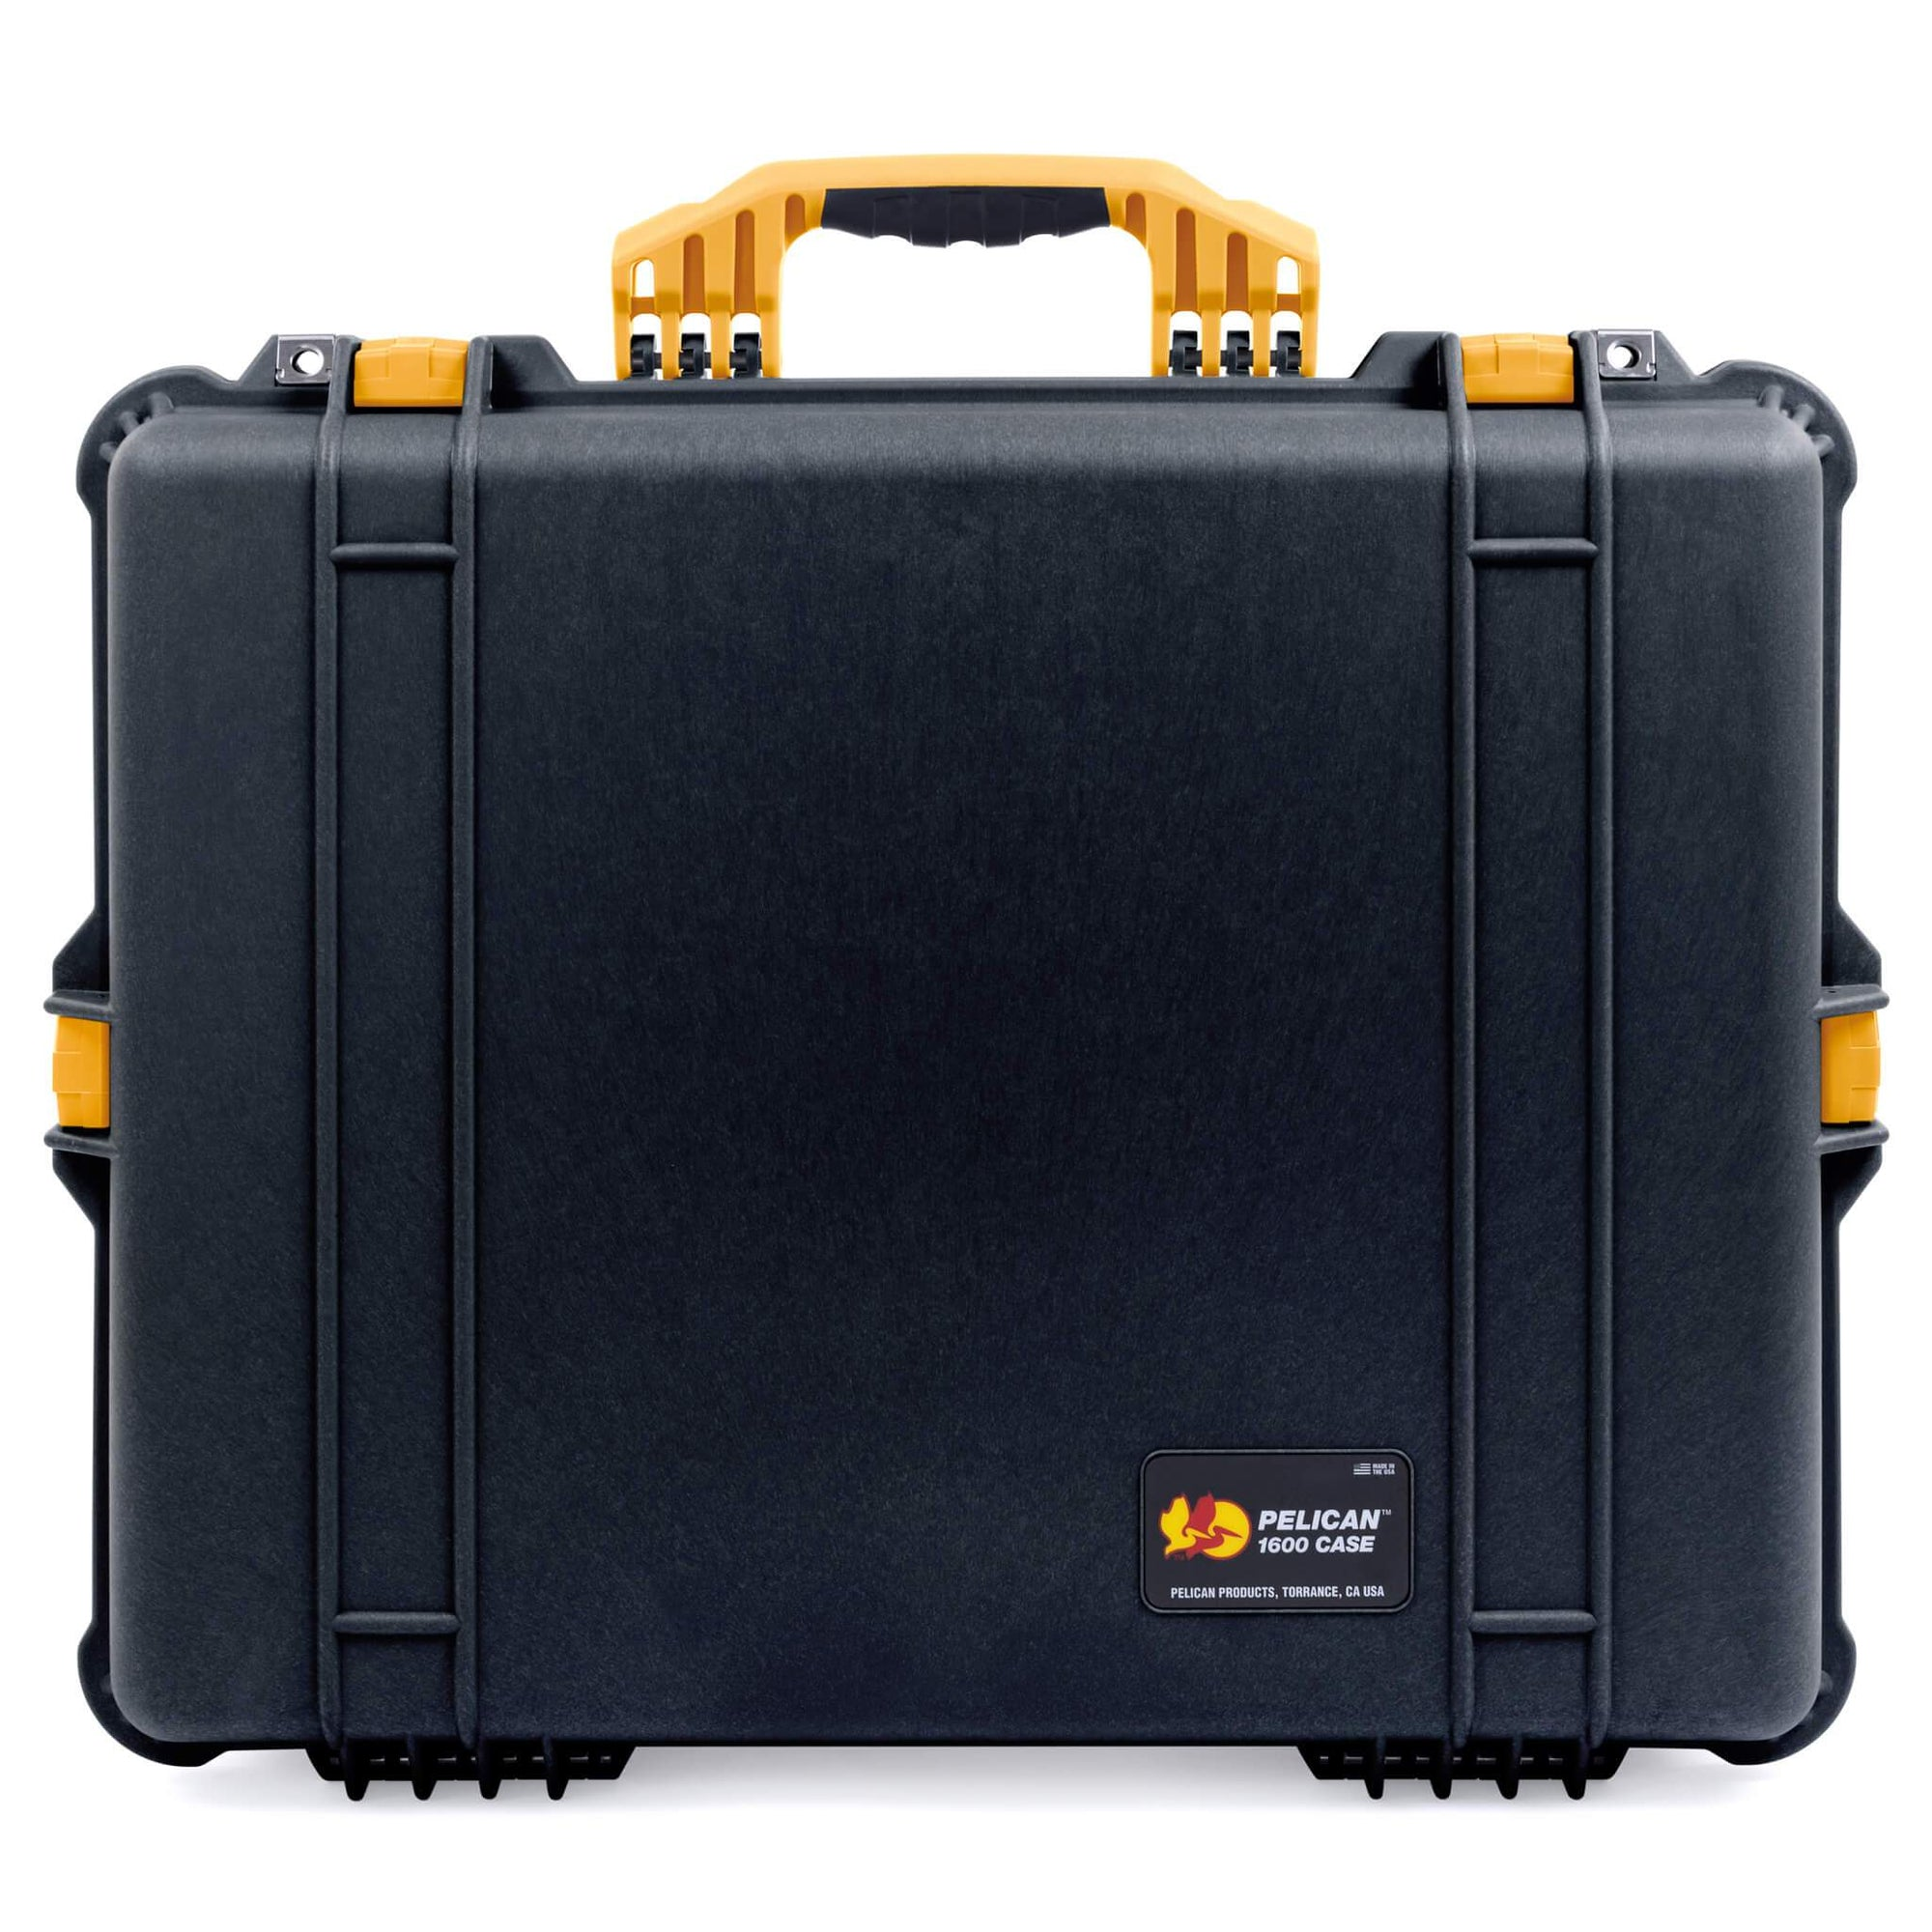 Pelican 1600 Case, Black with Yellow Handle & Latches